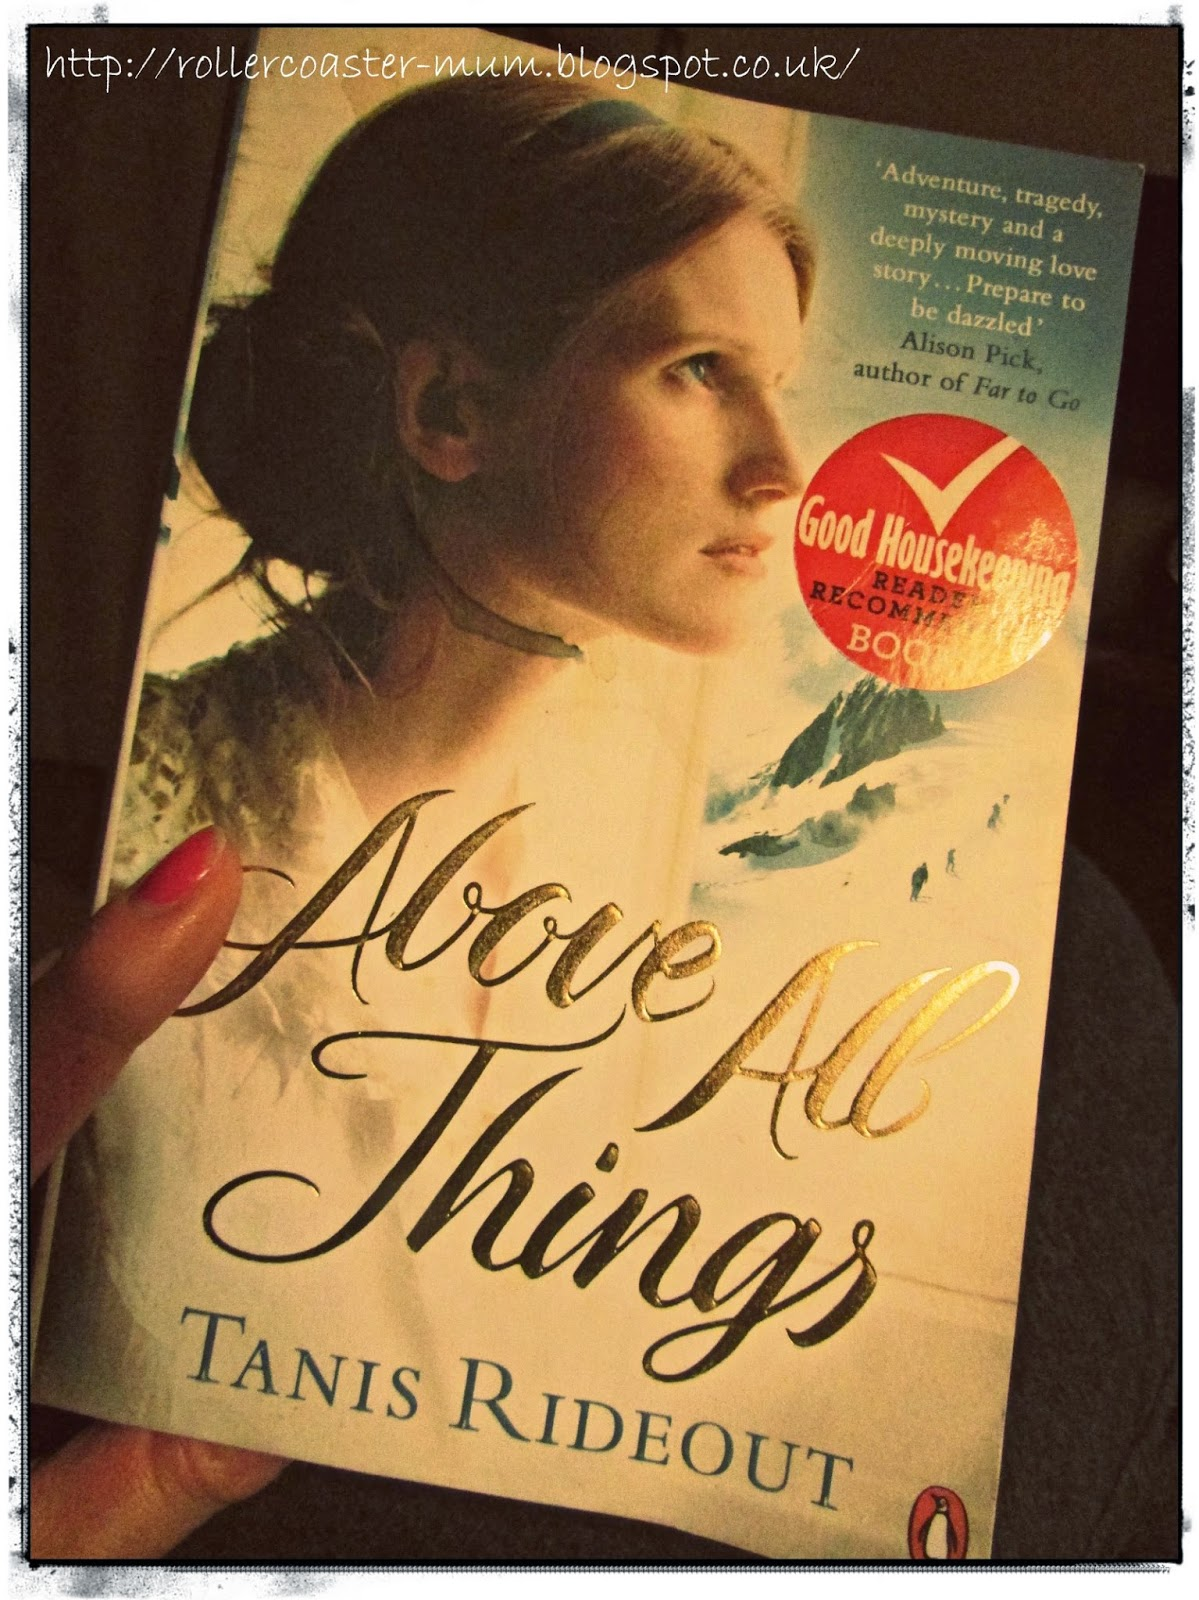 Book review of Above All Things by Tanis Rideout